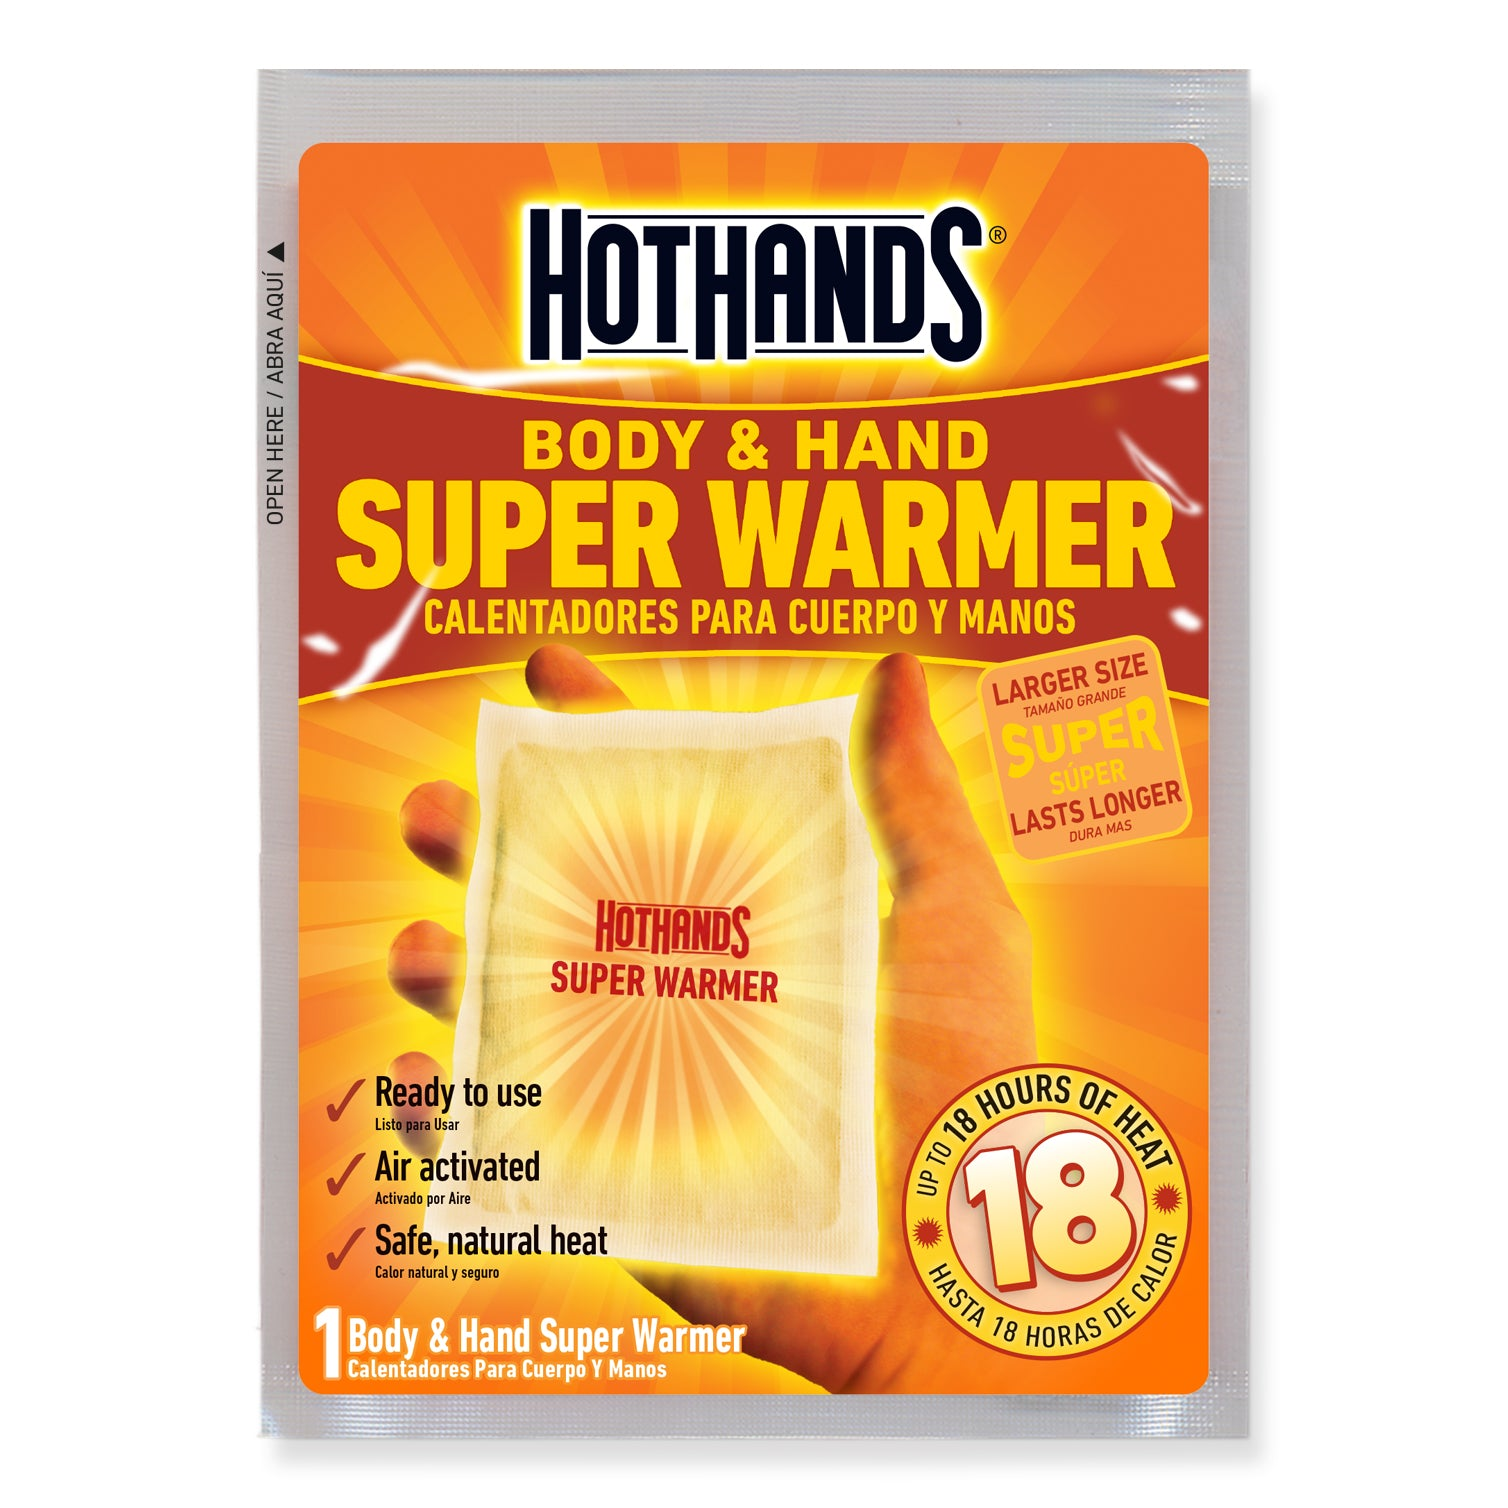 HotHands Body and Hand Super Warmer | HotHands Direct - Hot Hands hand warmers 18 hours, Hot Hands hand and body warmers, extra large hand warmers